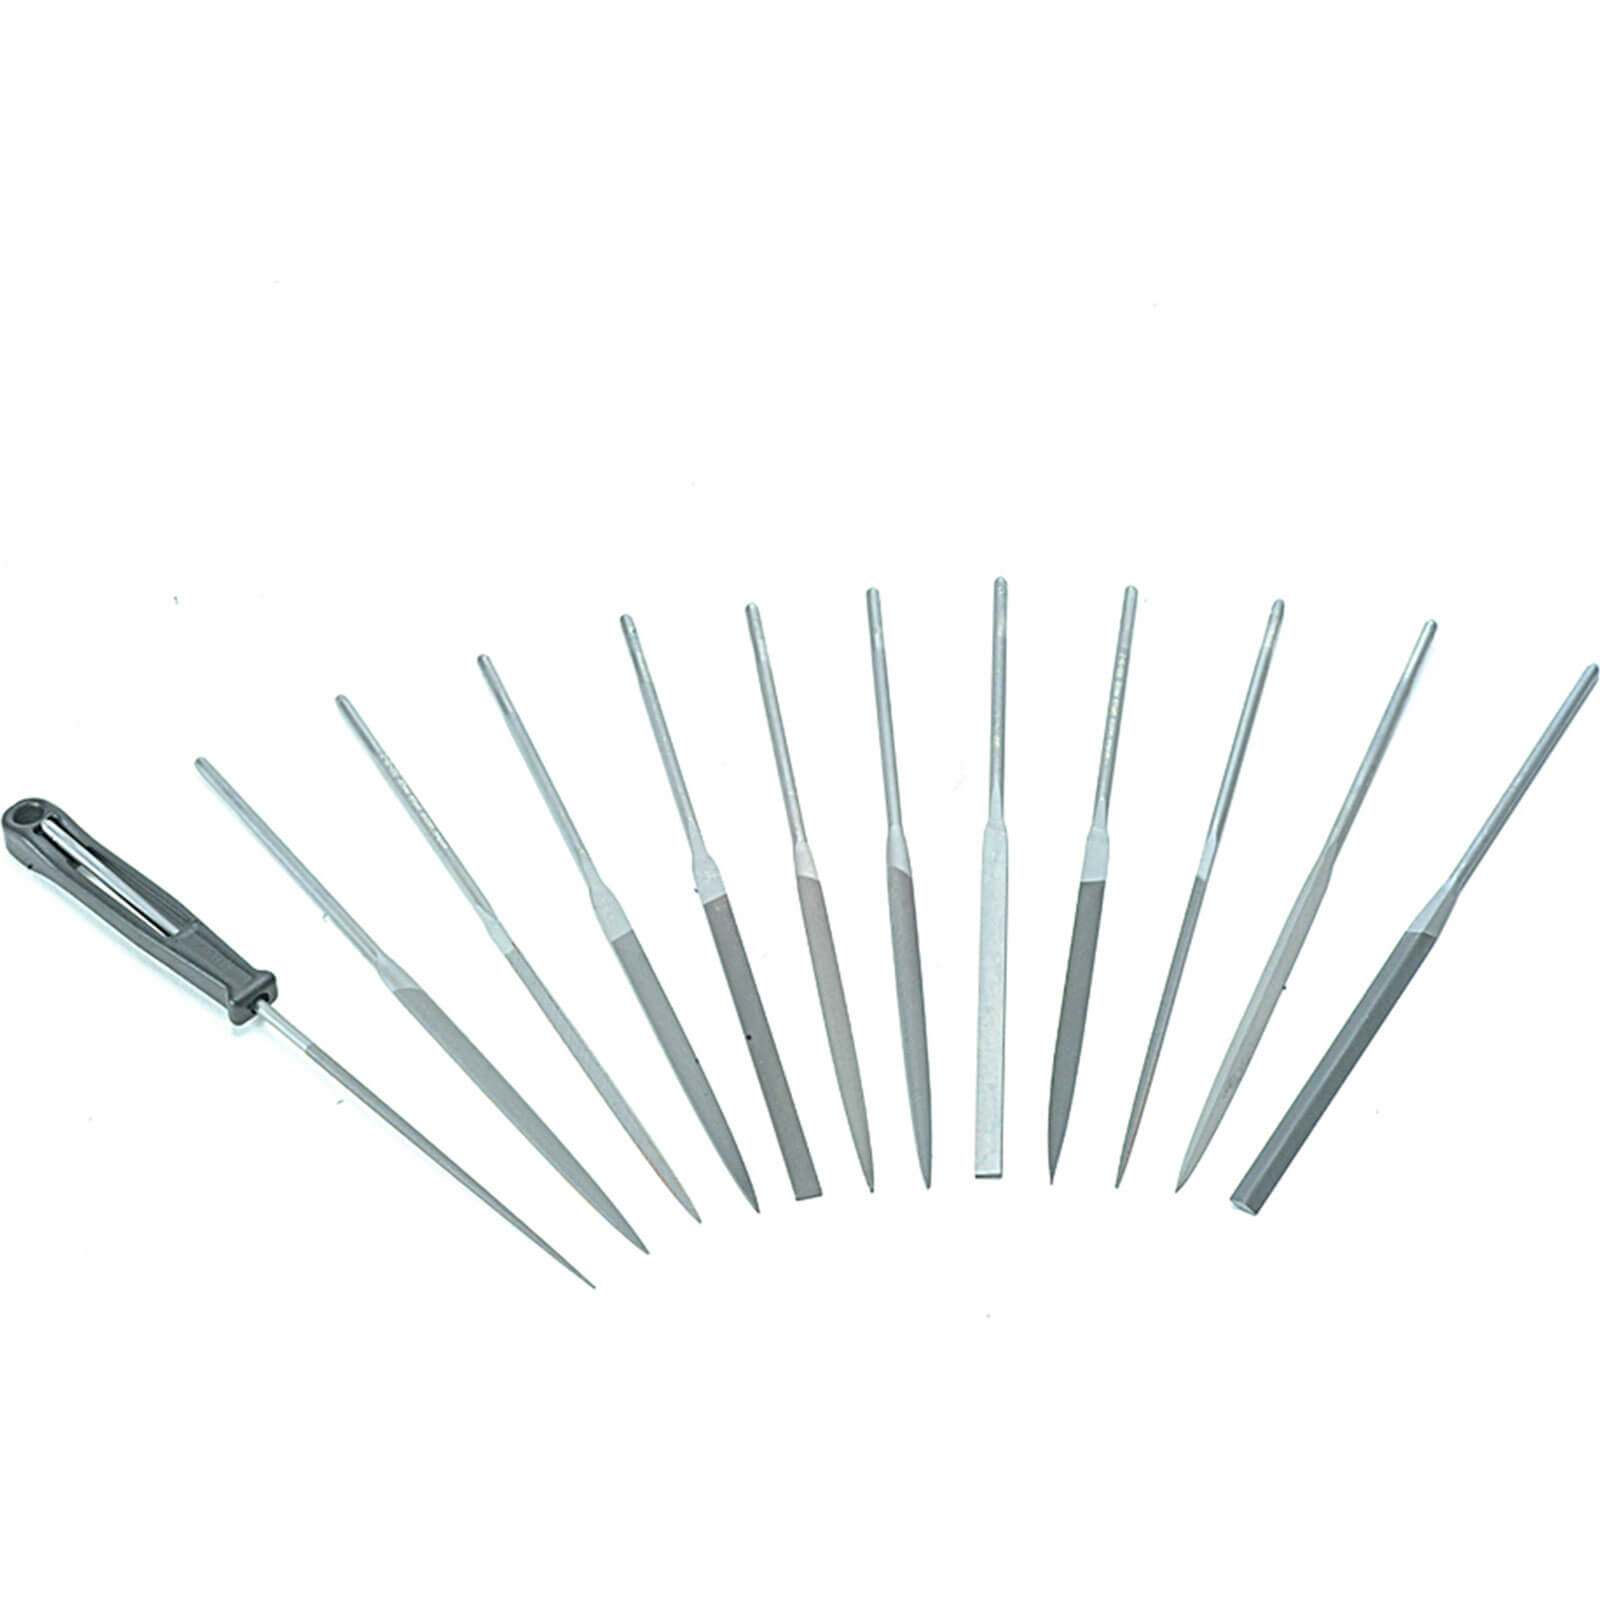 Image of Bahco 12 Piece Precision Needle File Set in Plastic Wallet